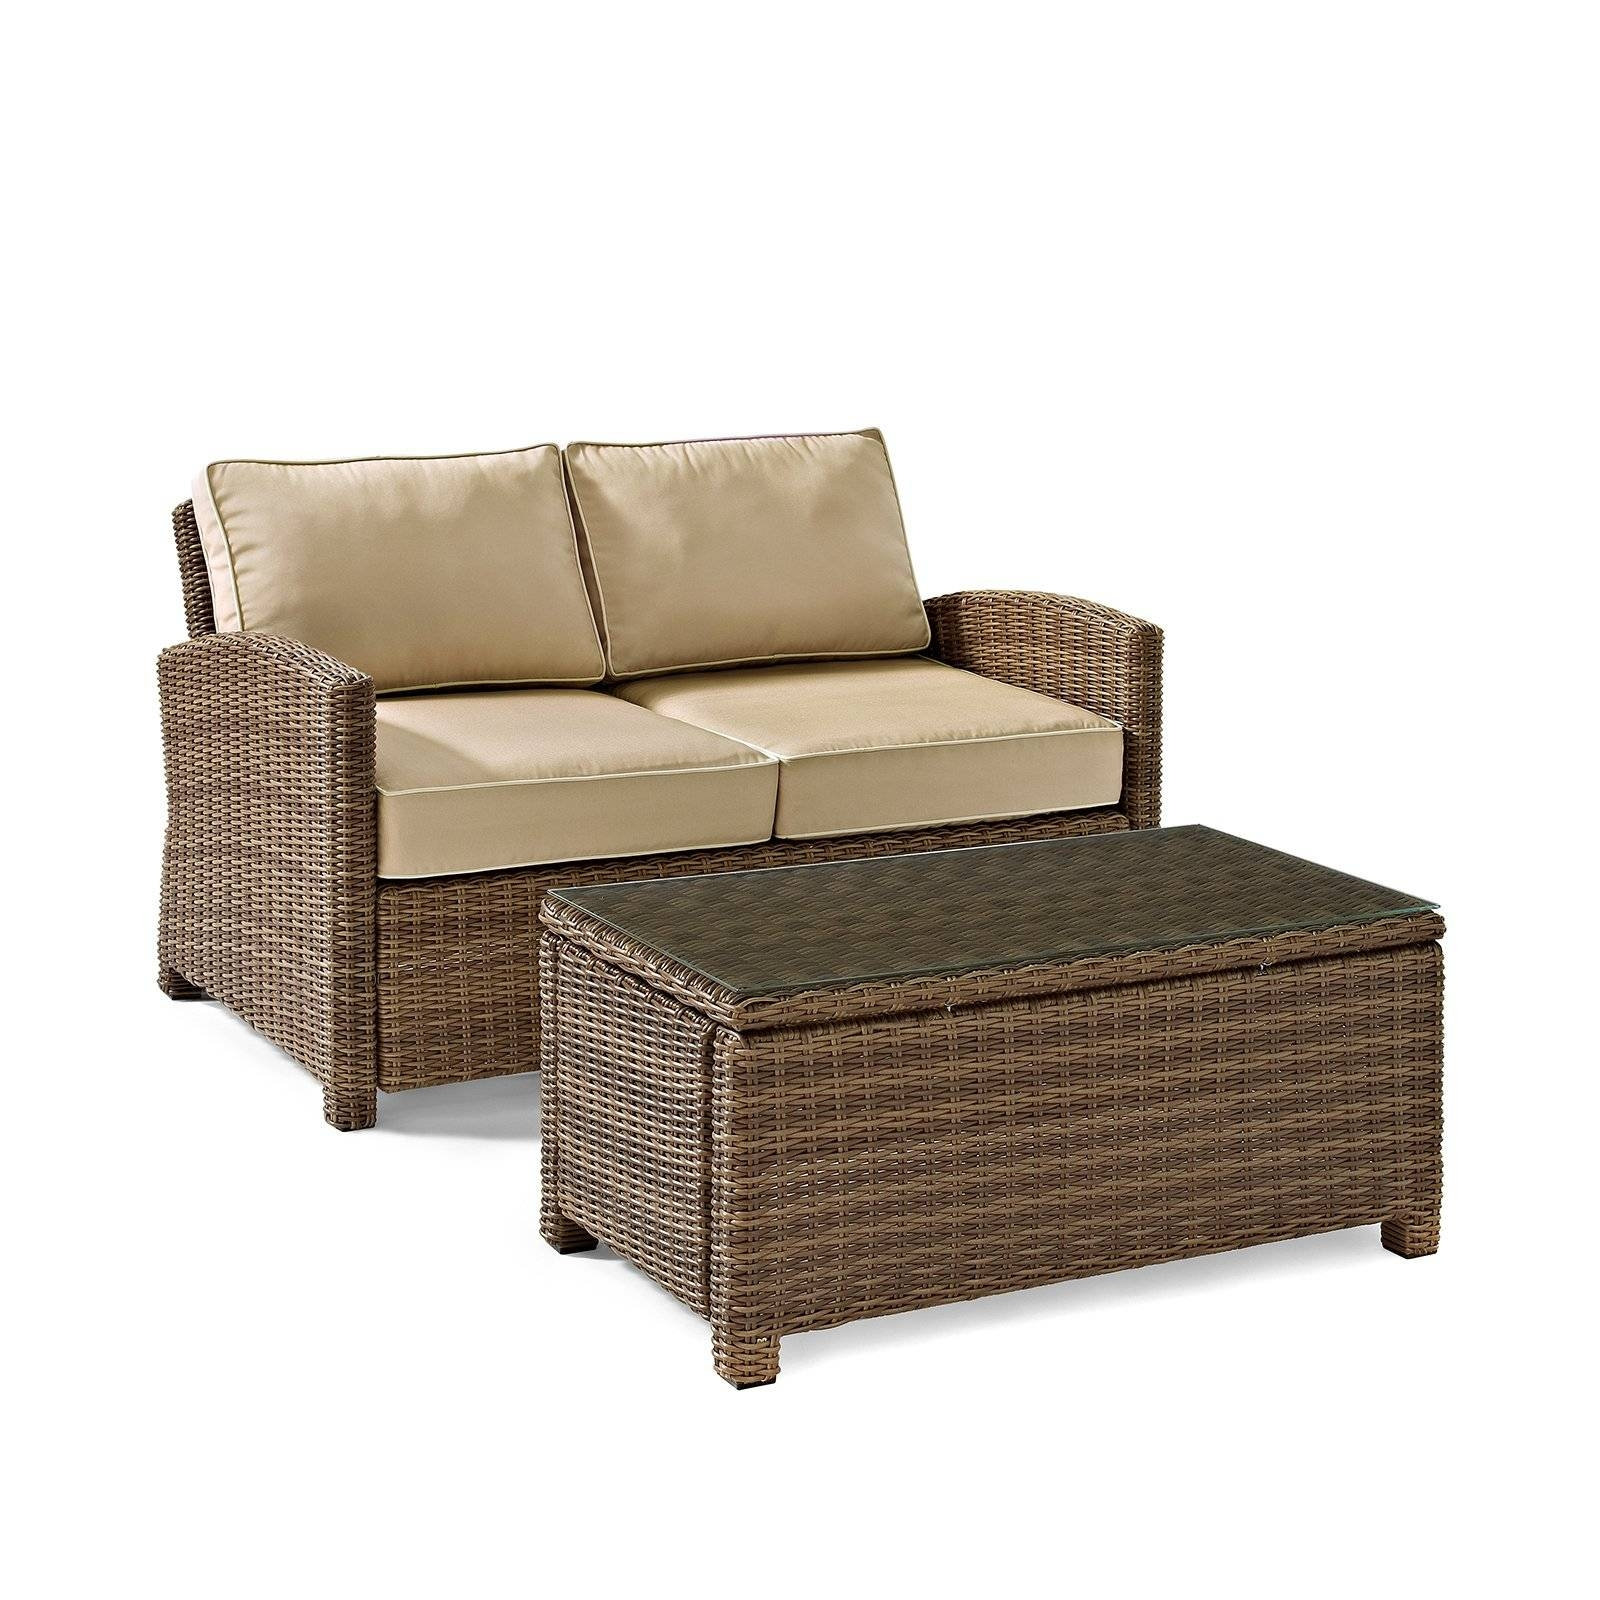 Outdoor Sofas & Outdoor Sectionals - Walmart inside Outdoor Sofa Chairs (Image 21 of 30)